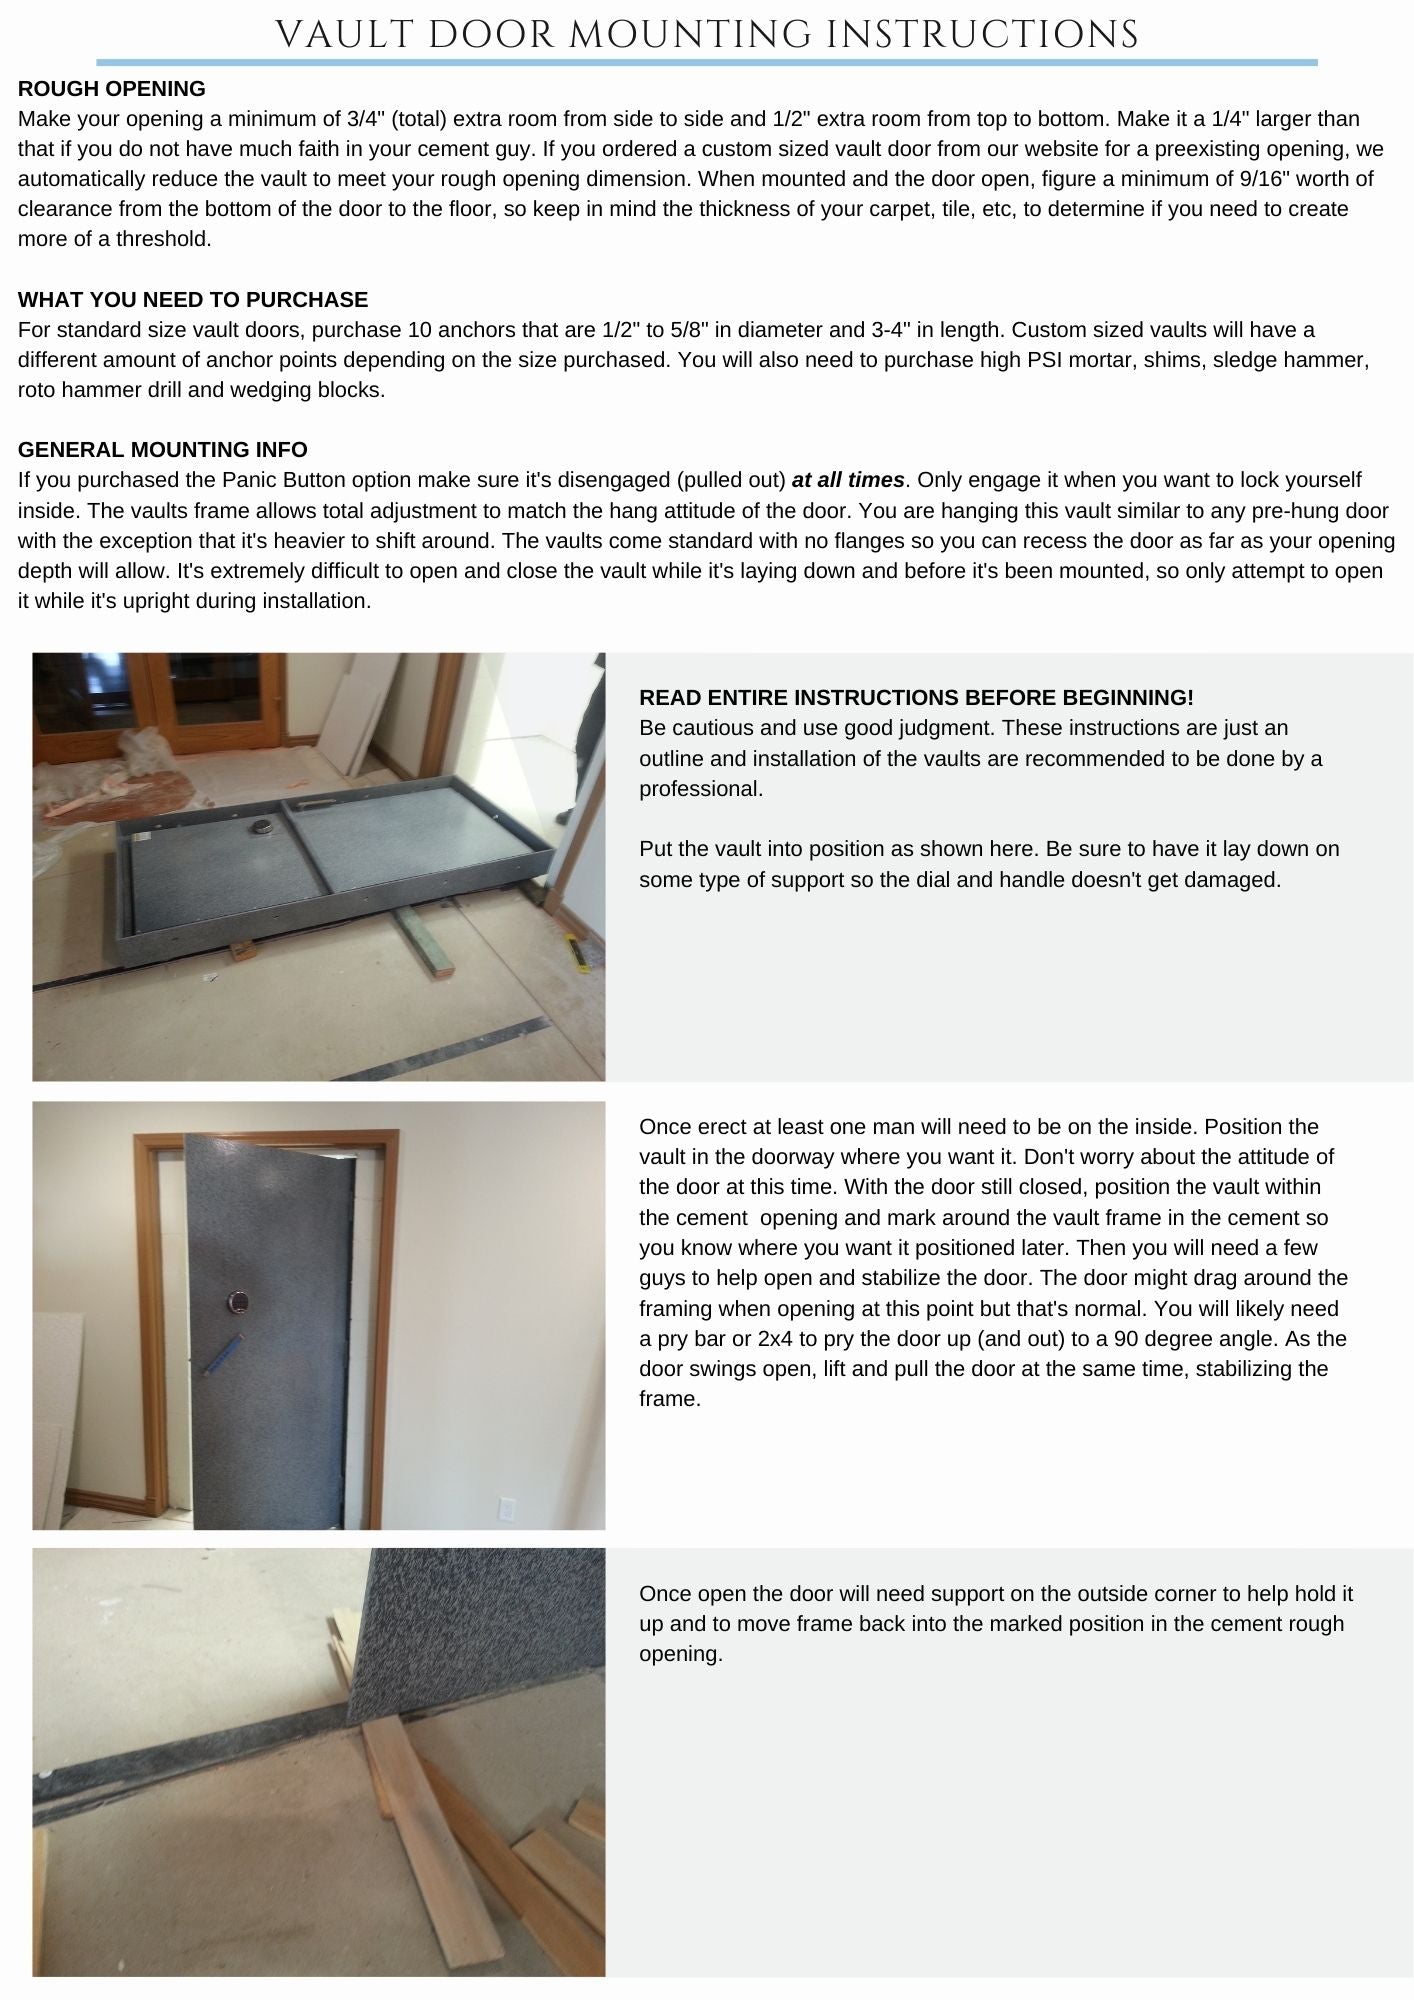 Vault door mounting instructions